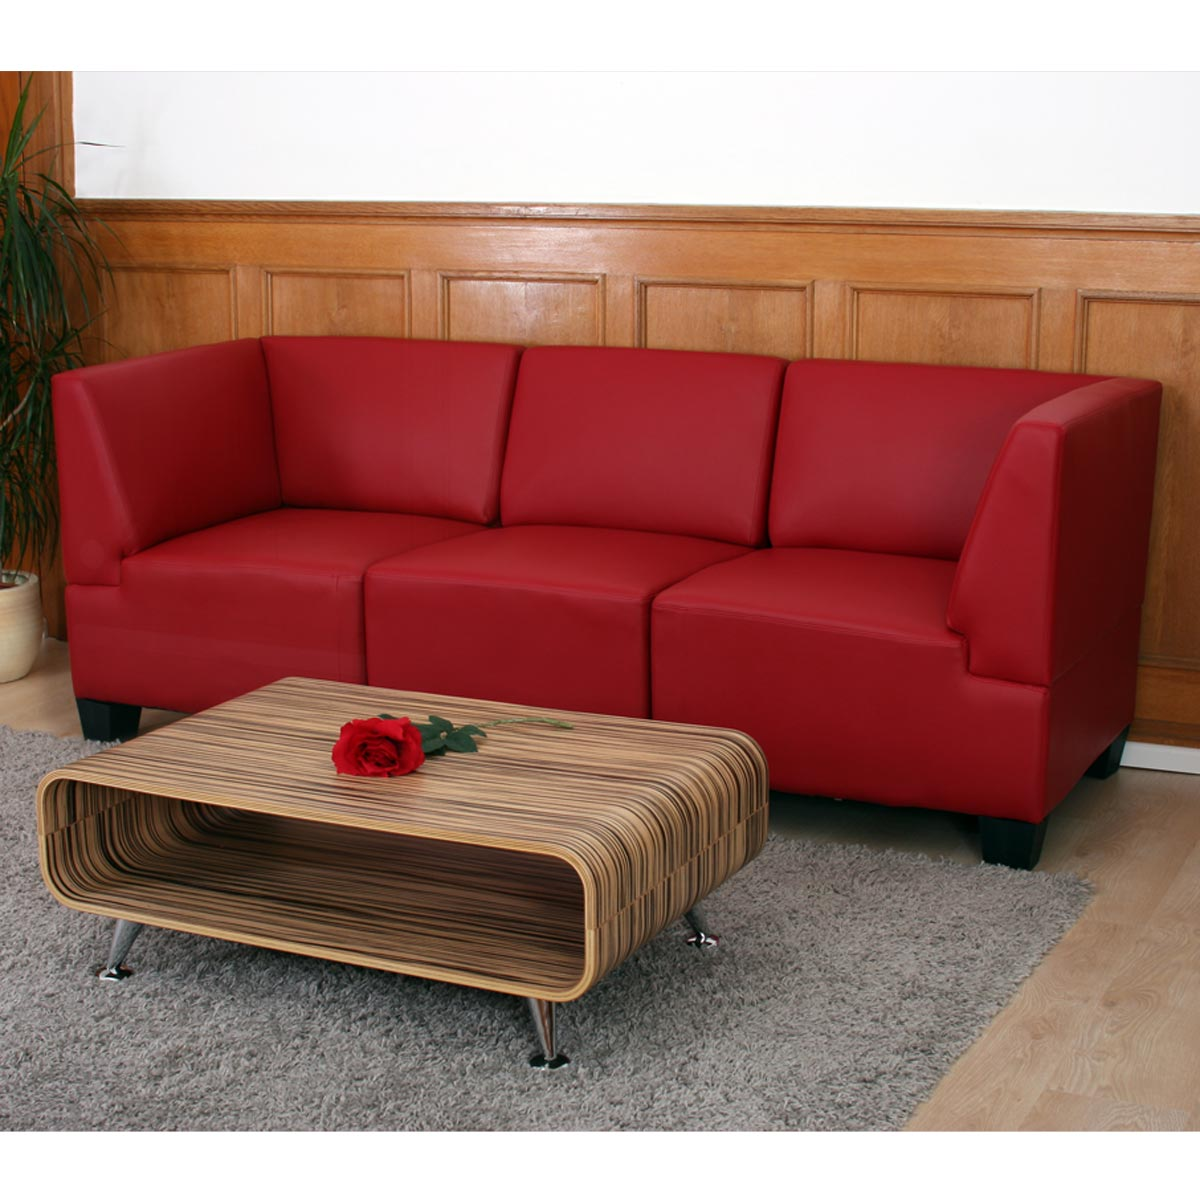 modular 3 sitzer sofa couch lyon kunstleder rot hohe. Black Bedroom Furniture Sets. Home Design Ideas